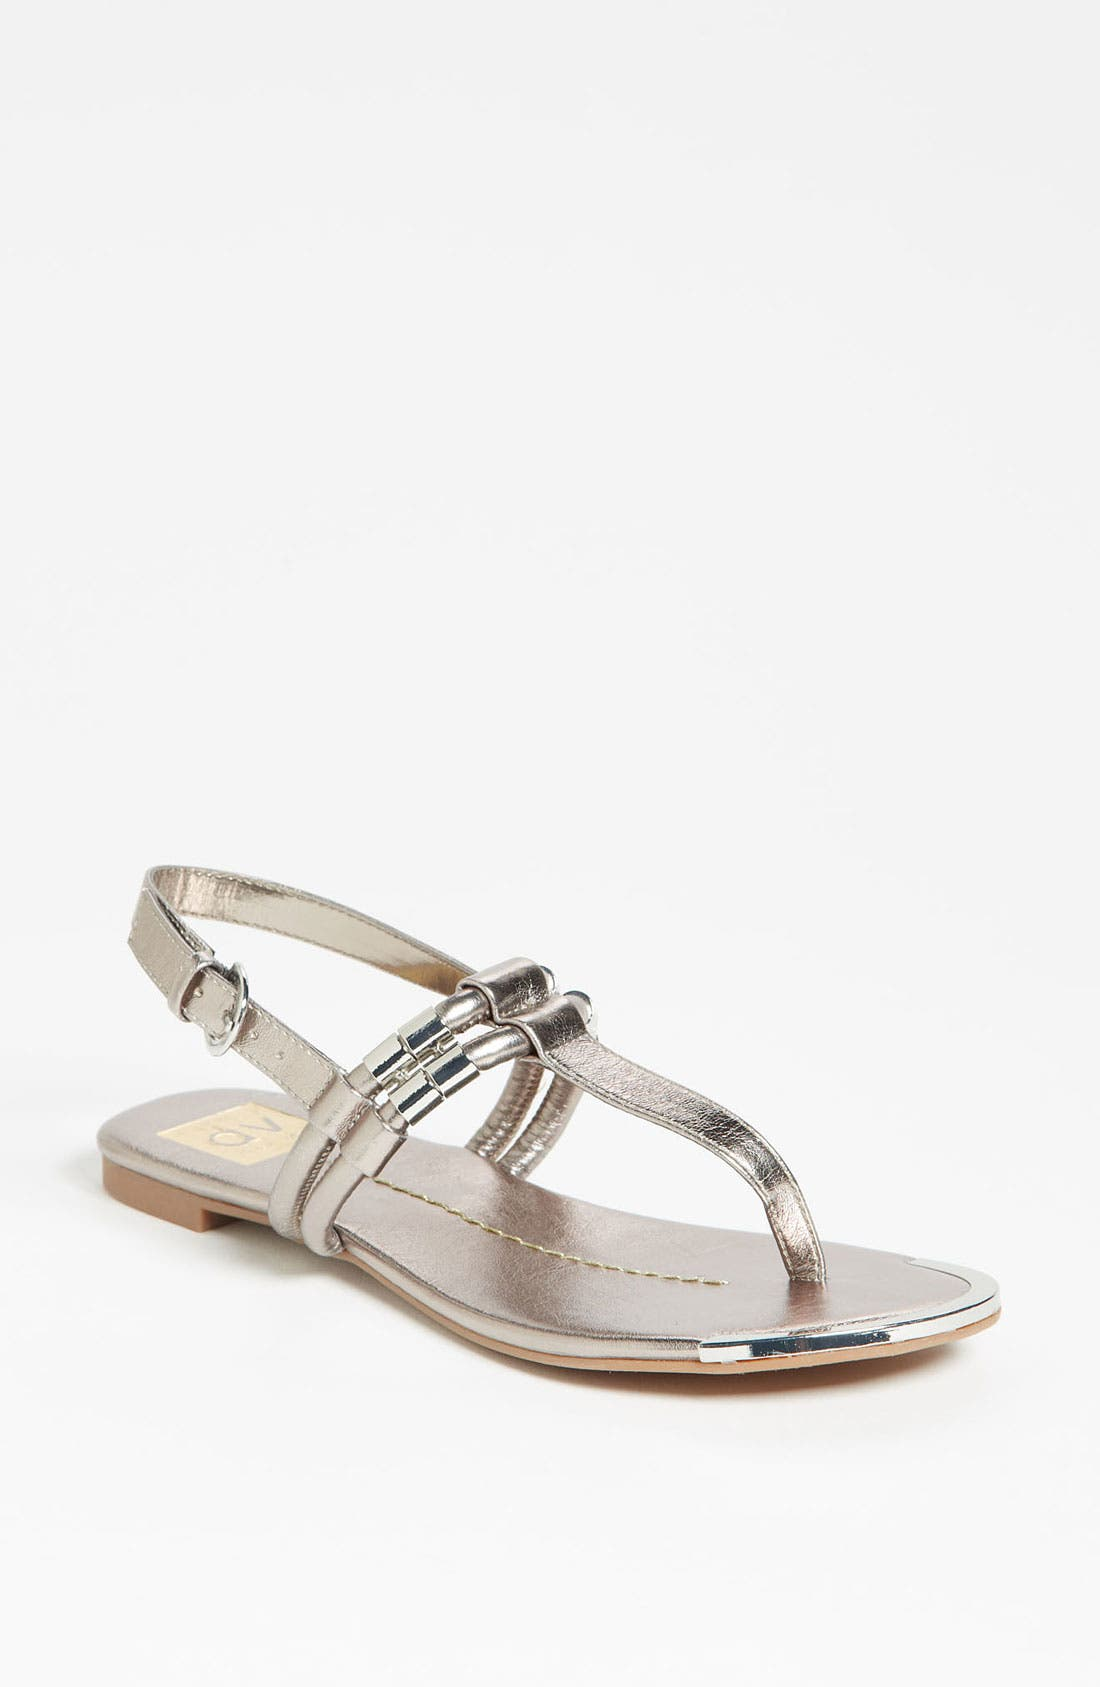 Alternate Image 1 Selected - DV by Dolce Vita 'Darcie' Sandal (Nordstrom Exclusive)